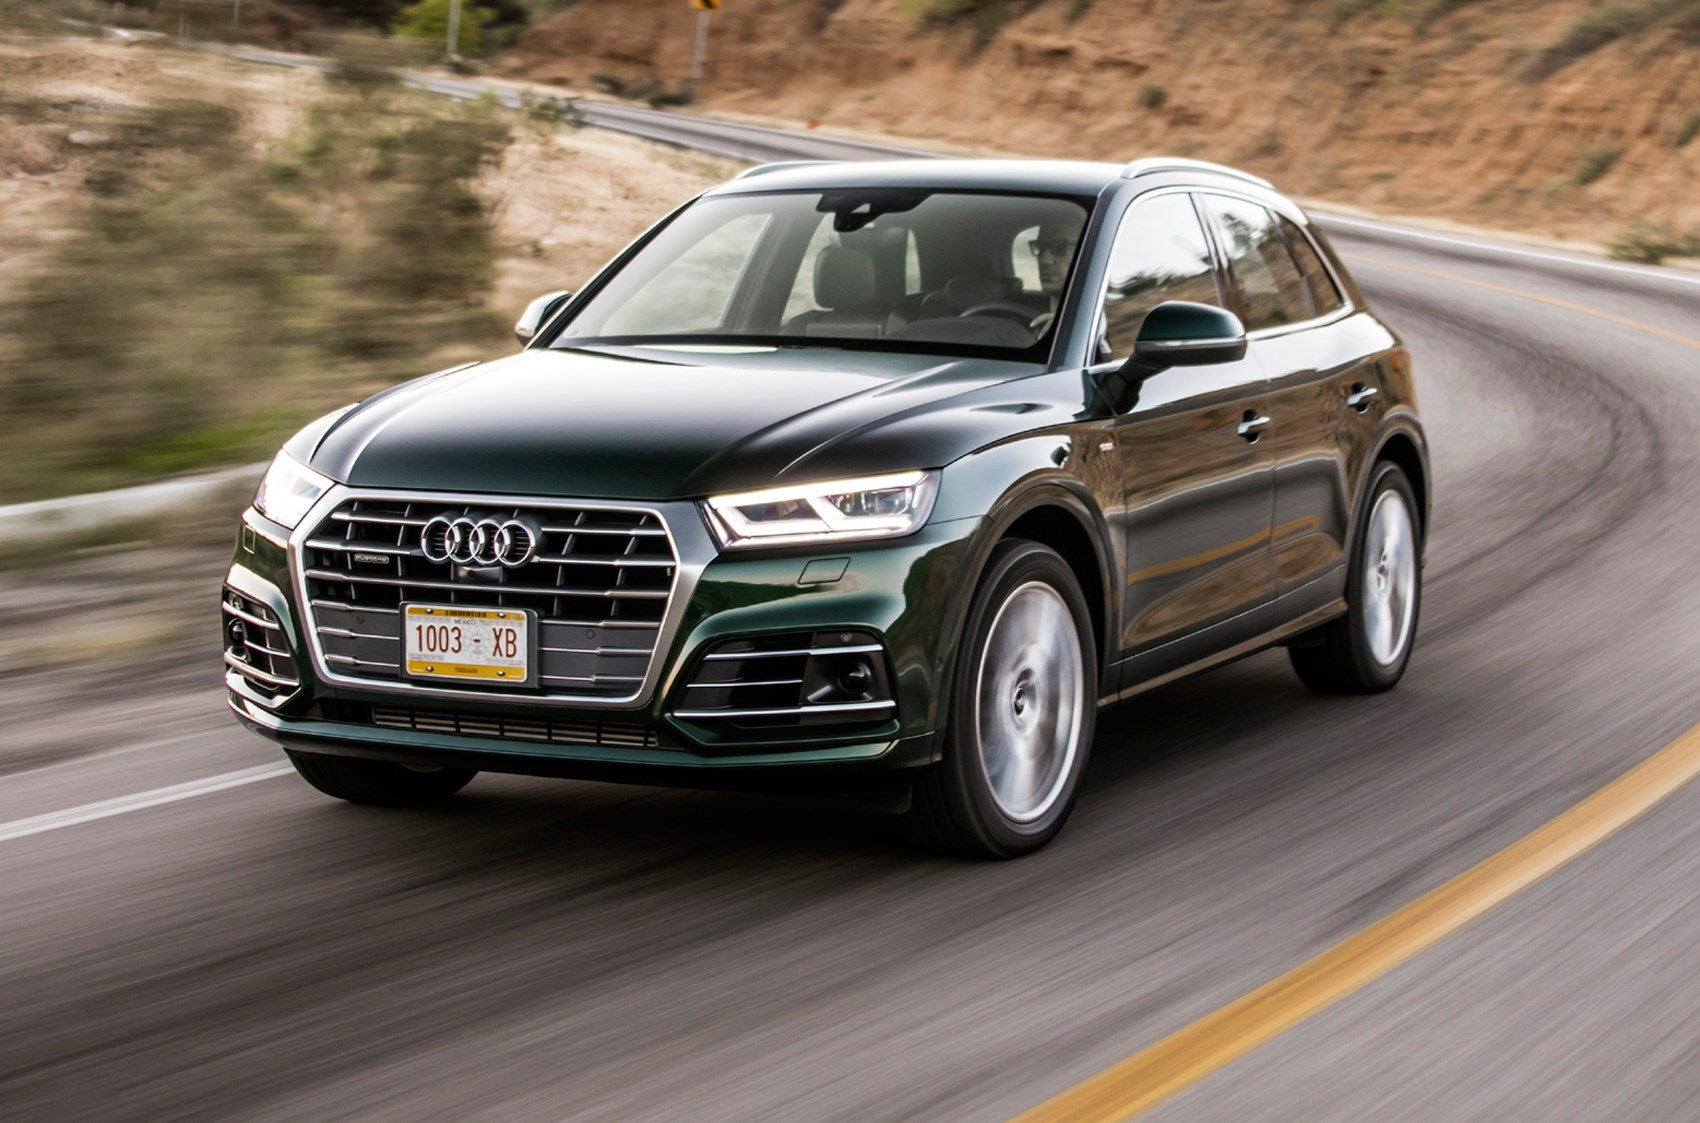 audi q5 s line 2 0 tfsi (2017) review car magazineaudi q5 s line 2 0 tfsi (2017) review